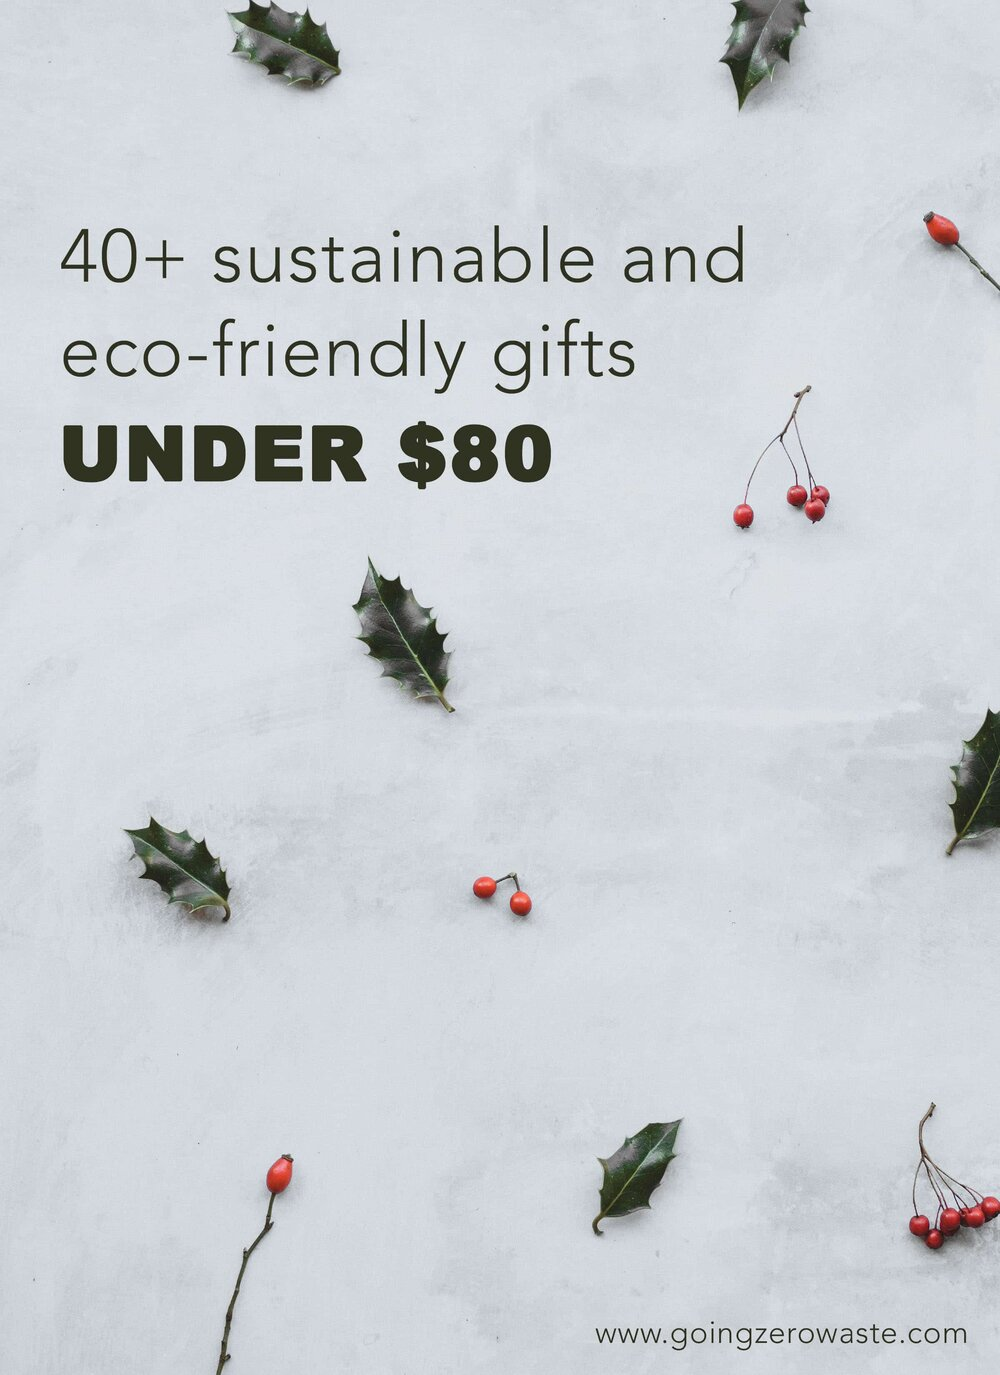 40+ sustainable and eco-friendly gifts under $80from www.goingzerowaste.com #stockingstuffer #stockingfiller #ecofriendly #sustainable #sustainablegifts #zerowaste #eco #ecogfits #giftguide #sustainablestockings